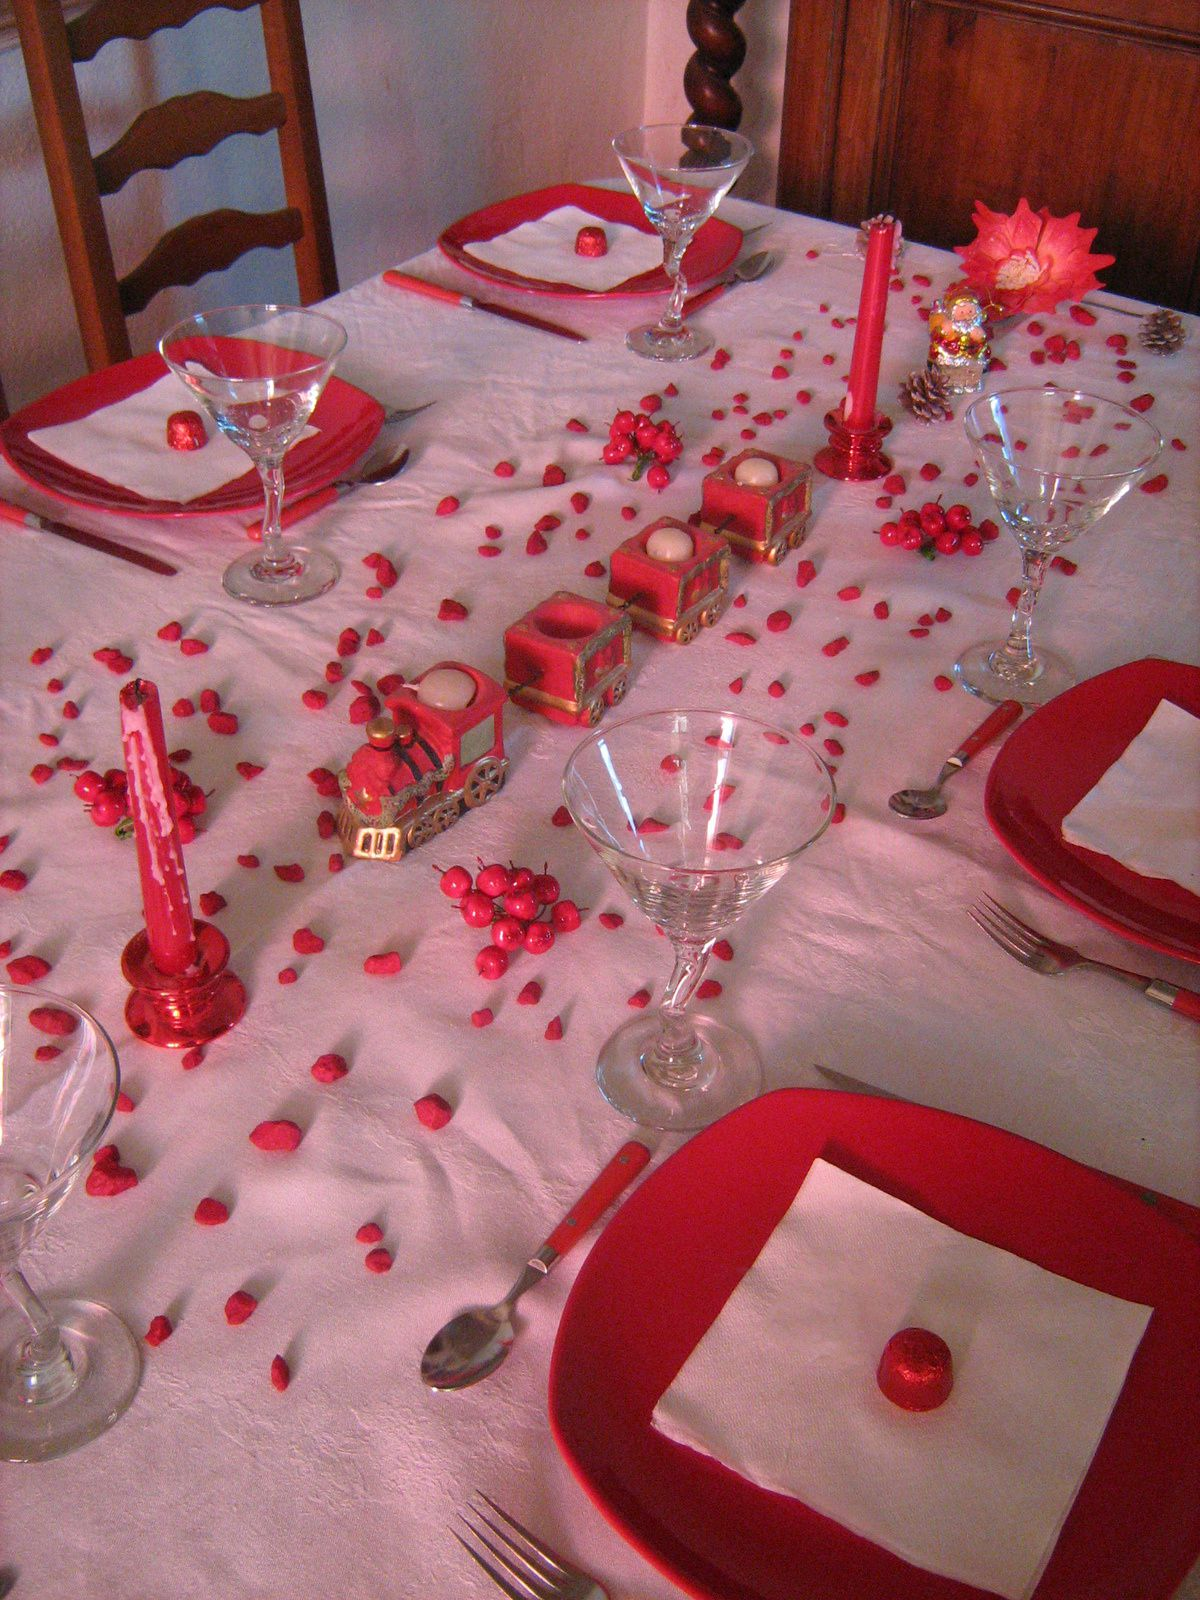 Table de noel en rouge et blanc 1 table et d co d 39 estelle - Decoration de table de noel blanche ...